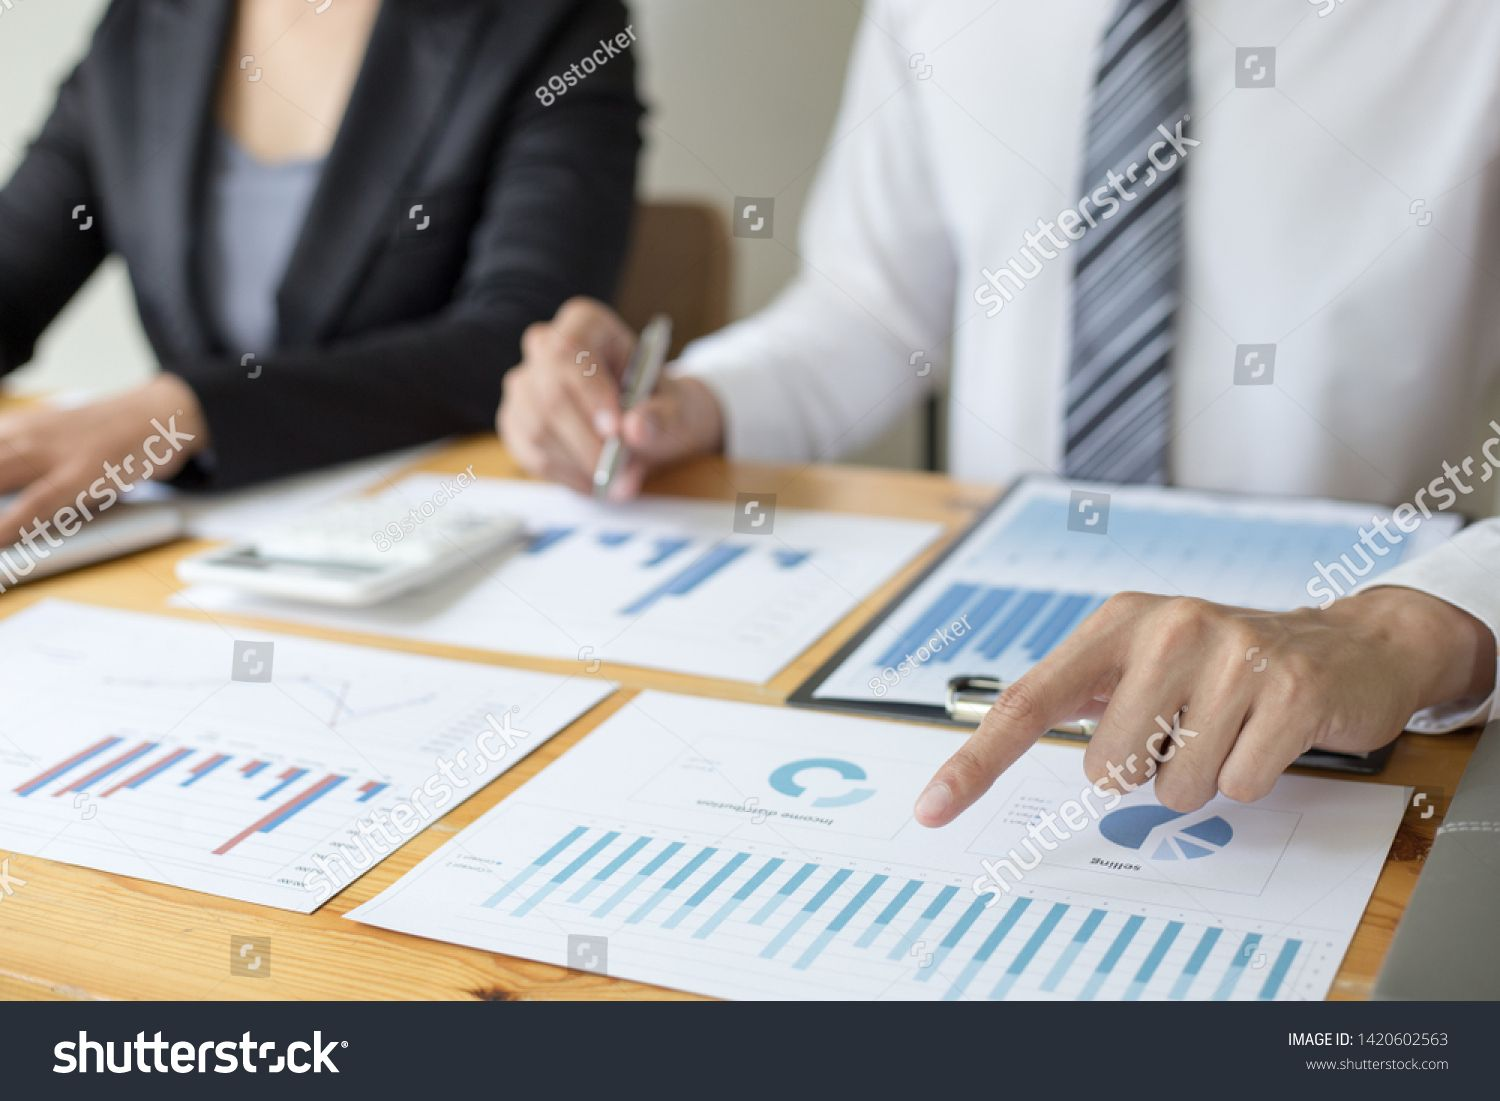 Managers and accountants have checked the company's